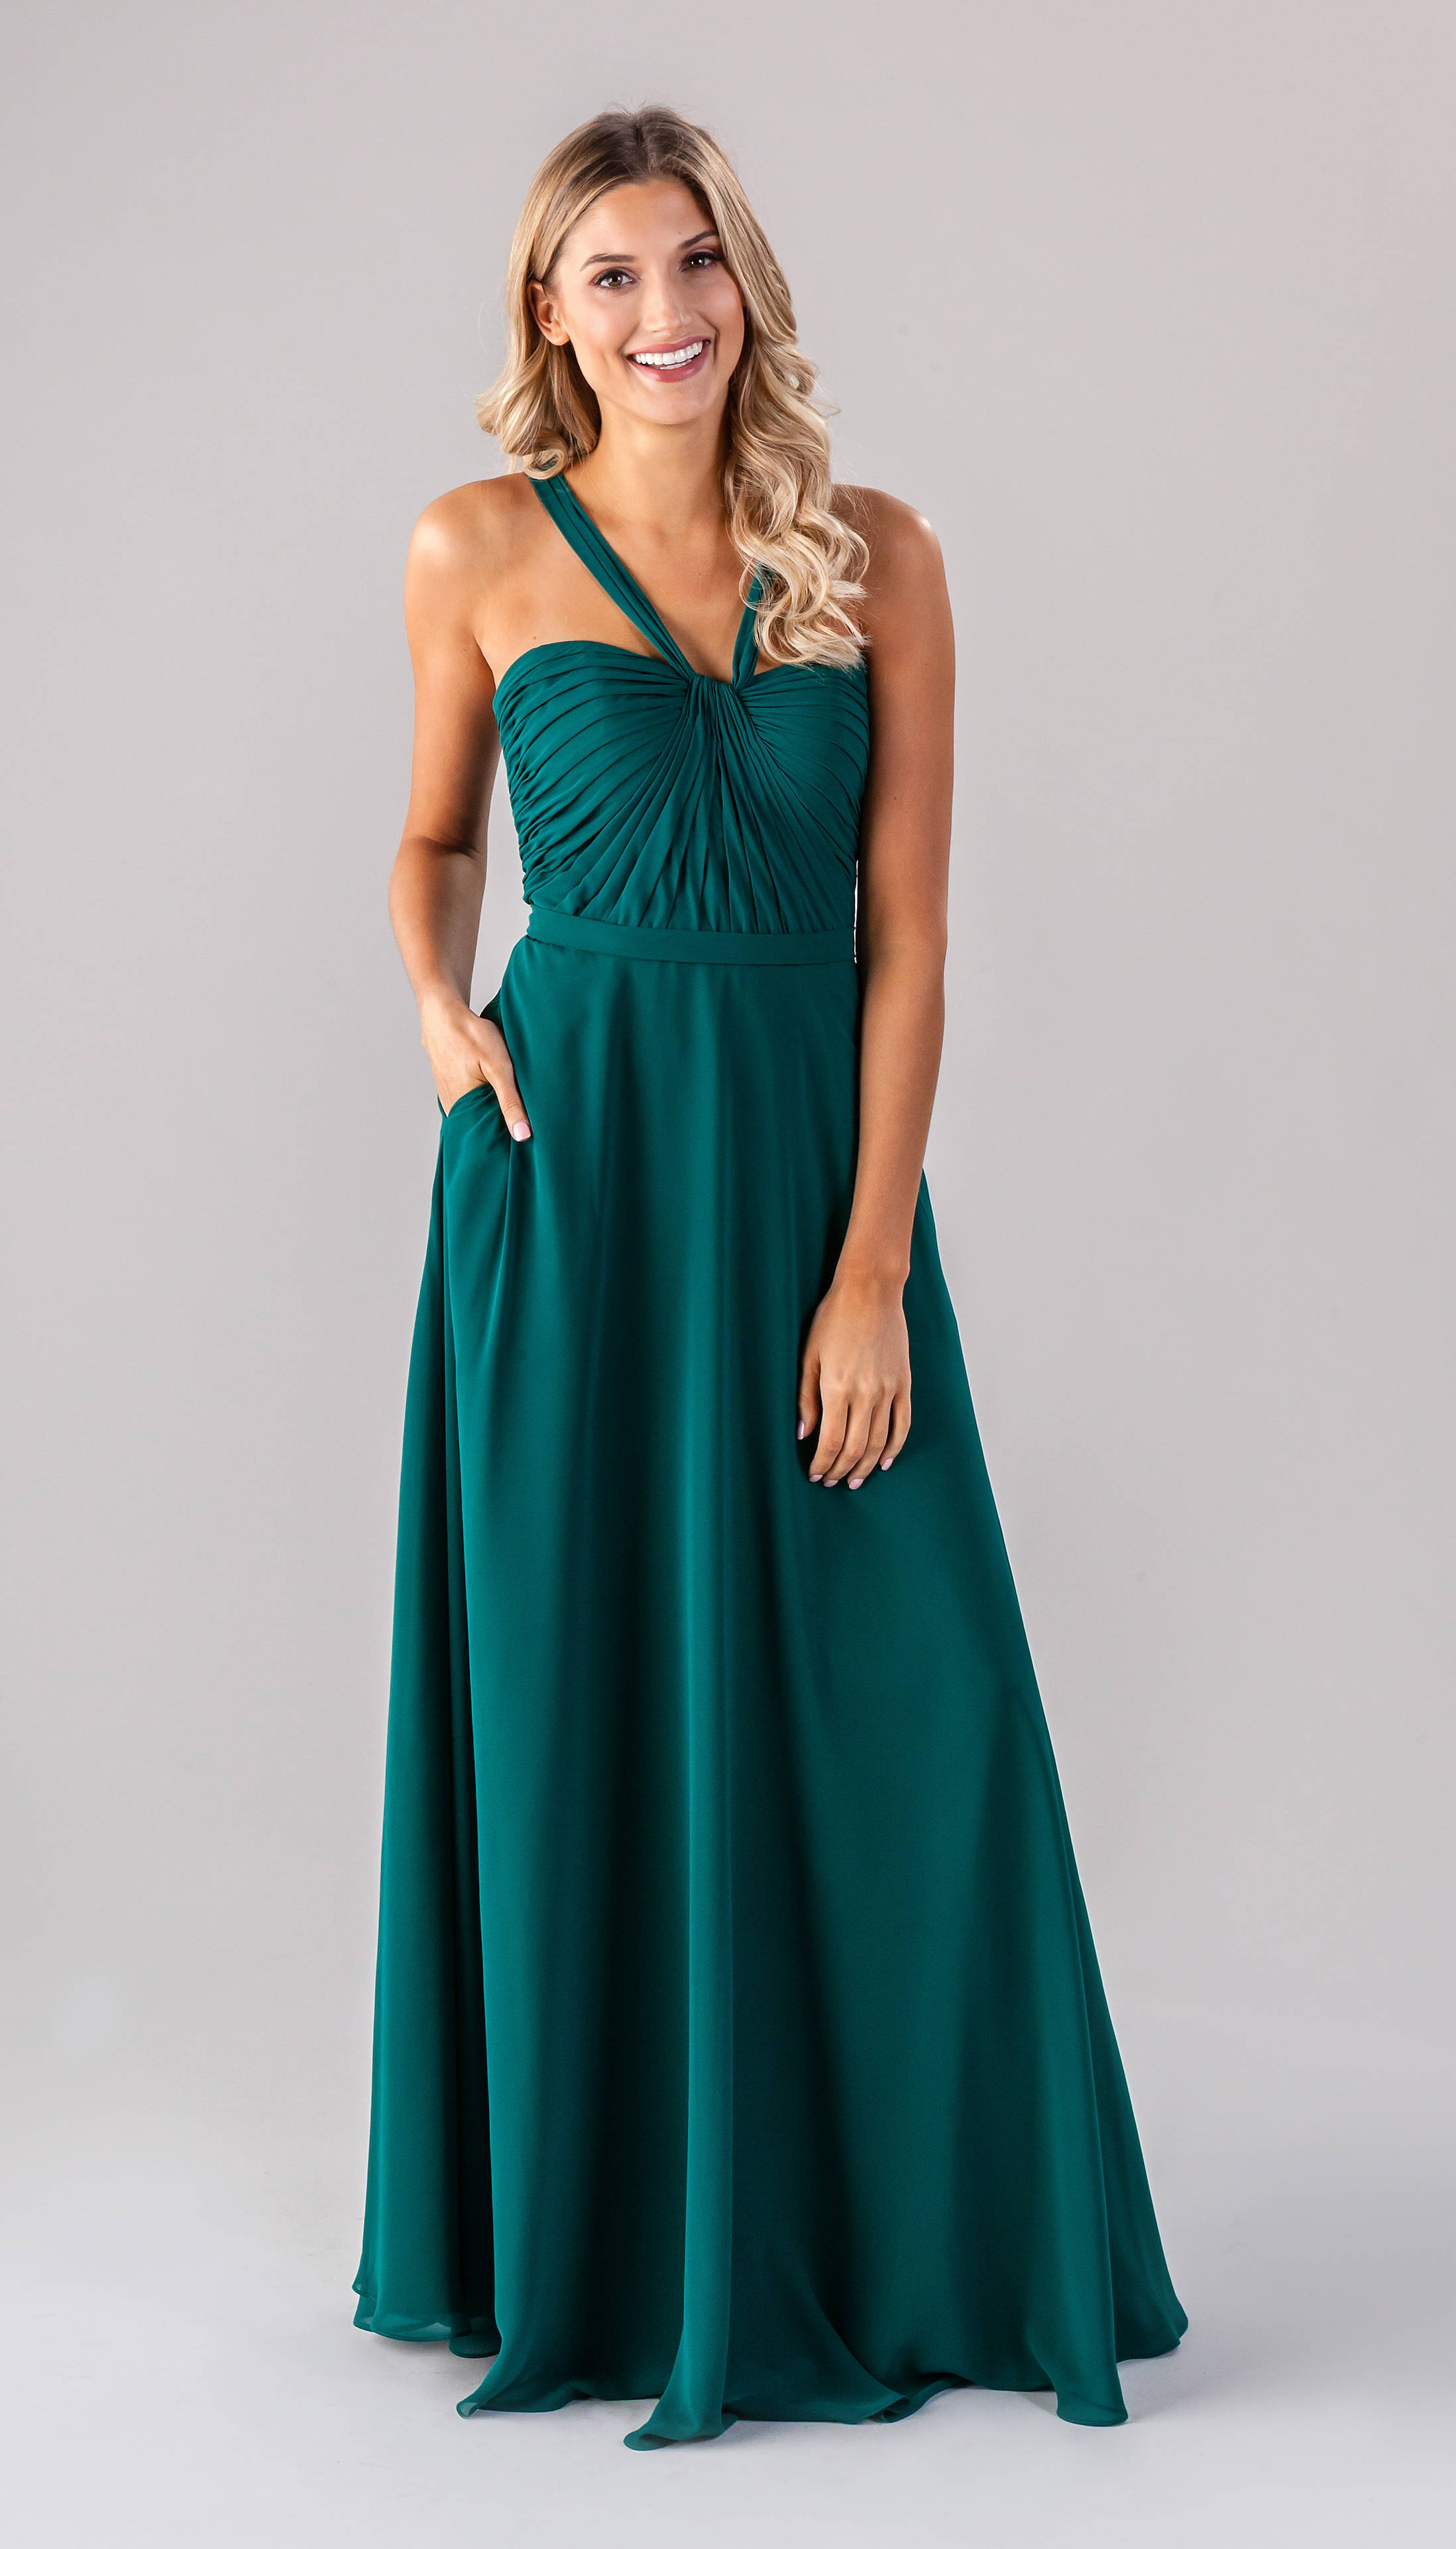 Kennedy Blue Ivy Bridesmaid Dress